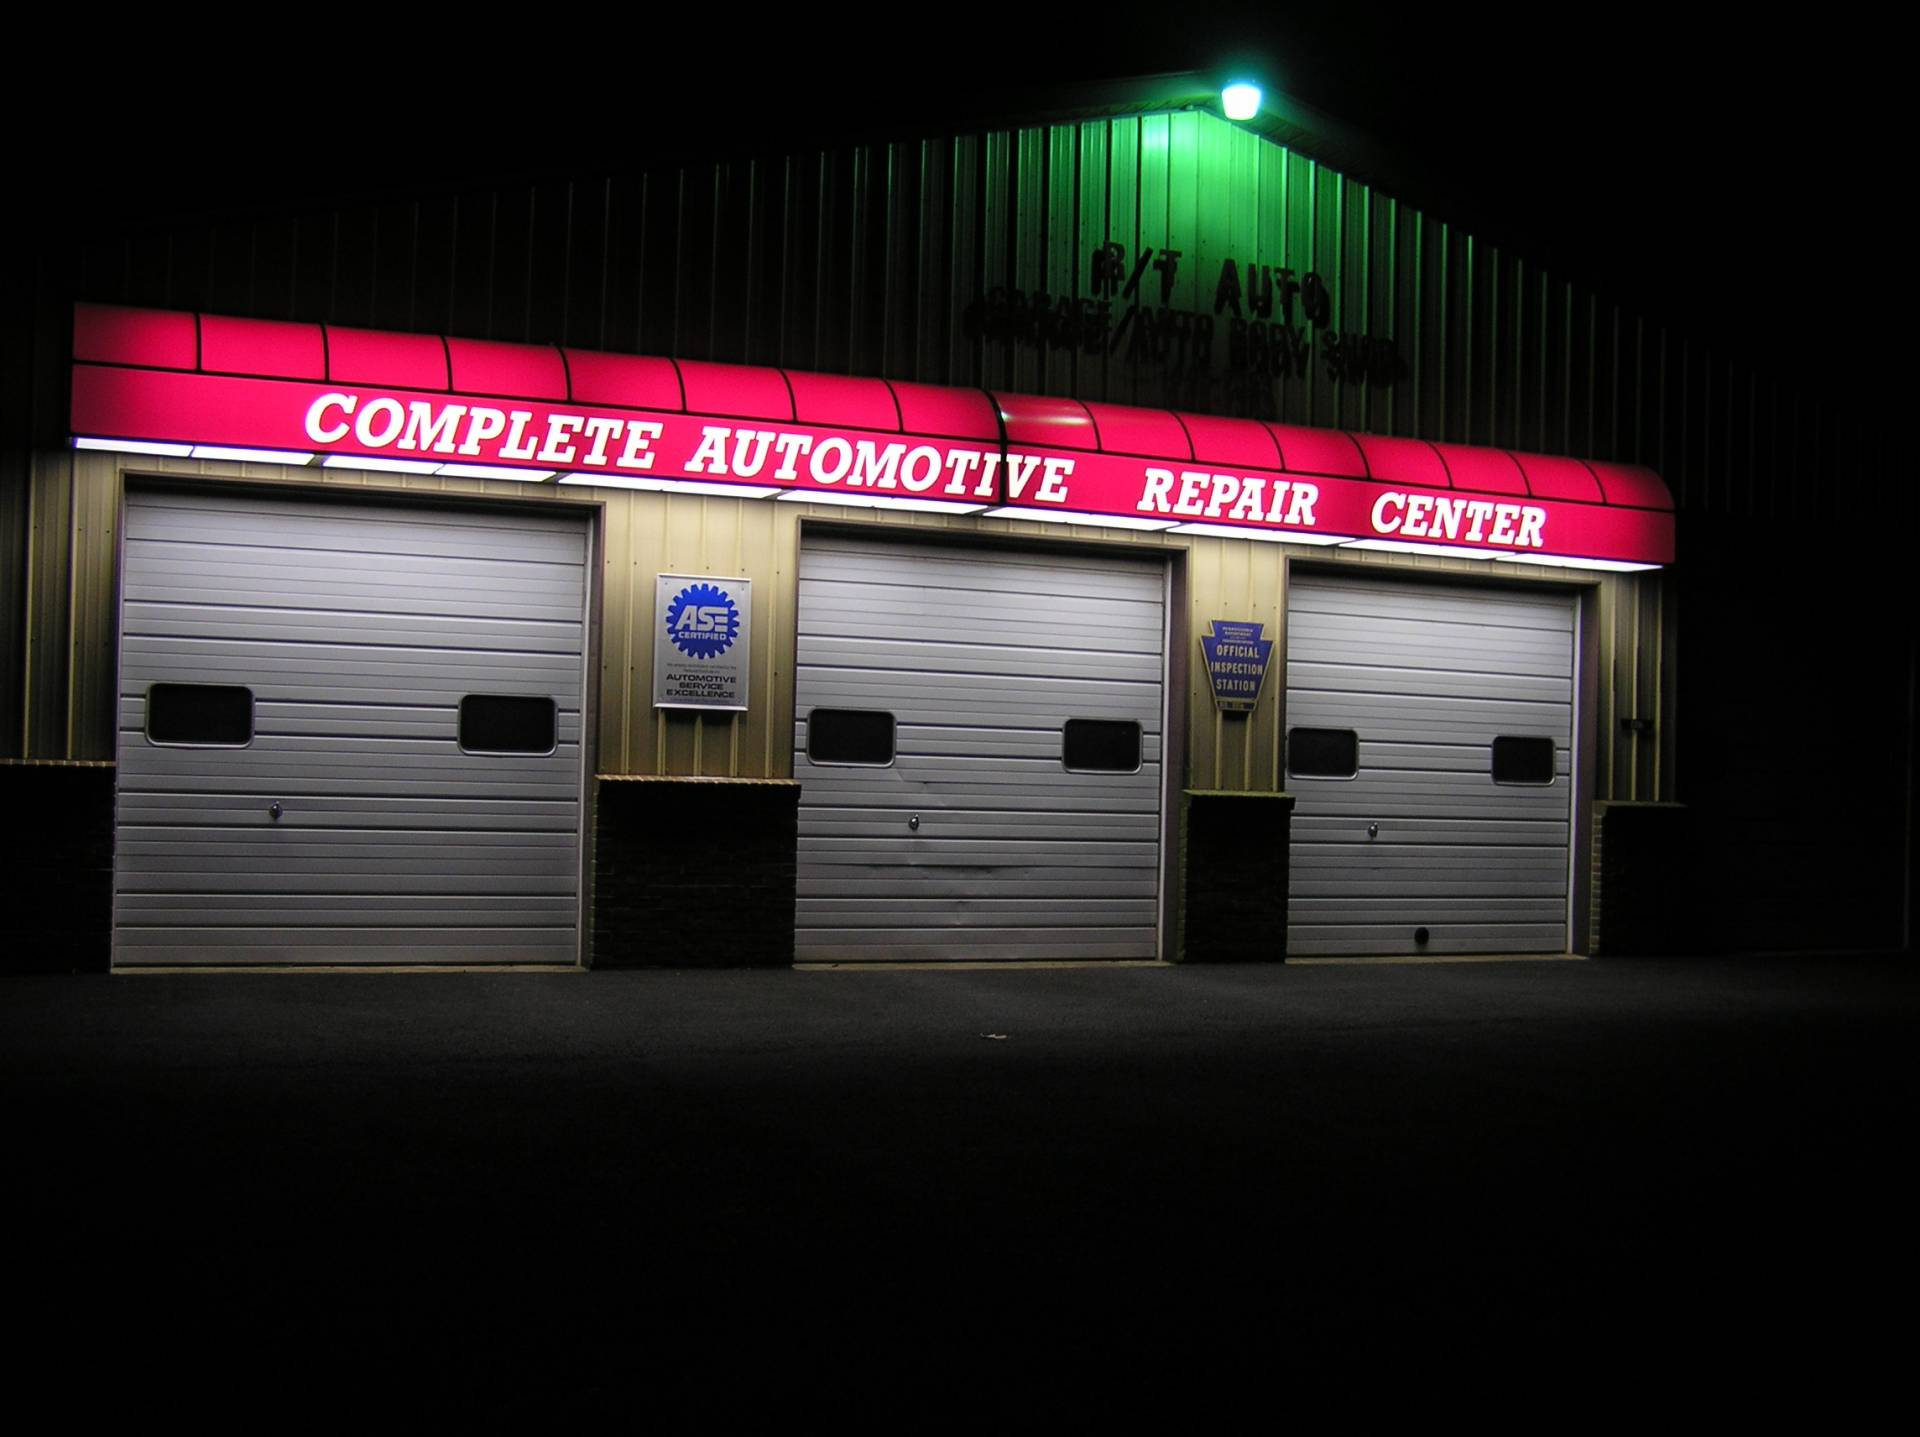 Backlit Awning Complete Automotive Repair Center